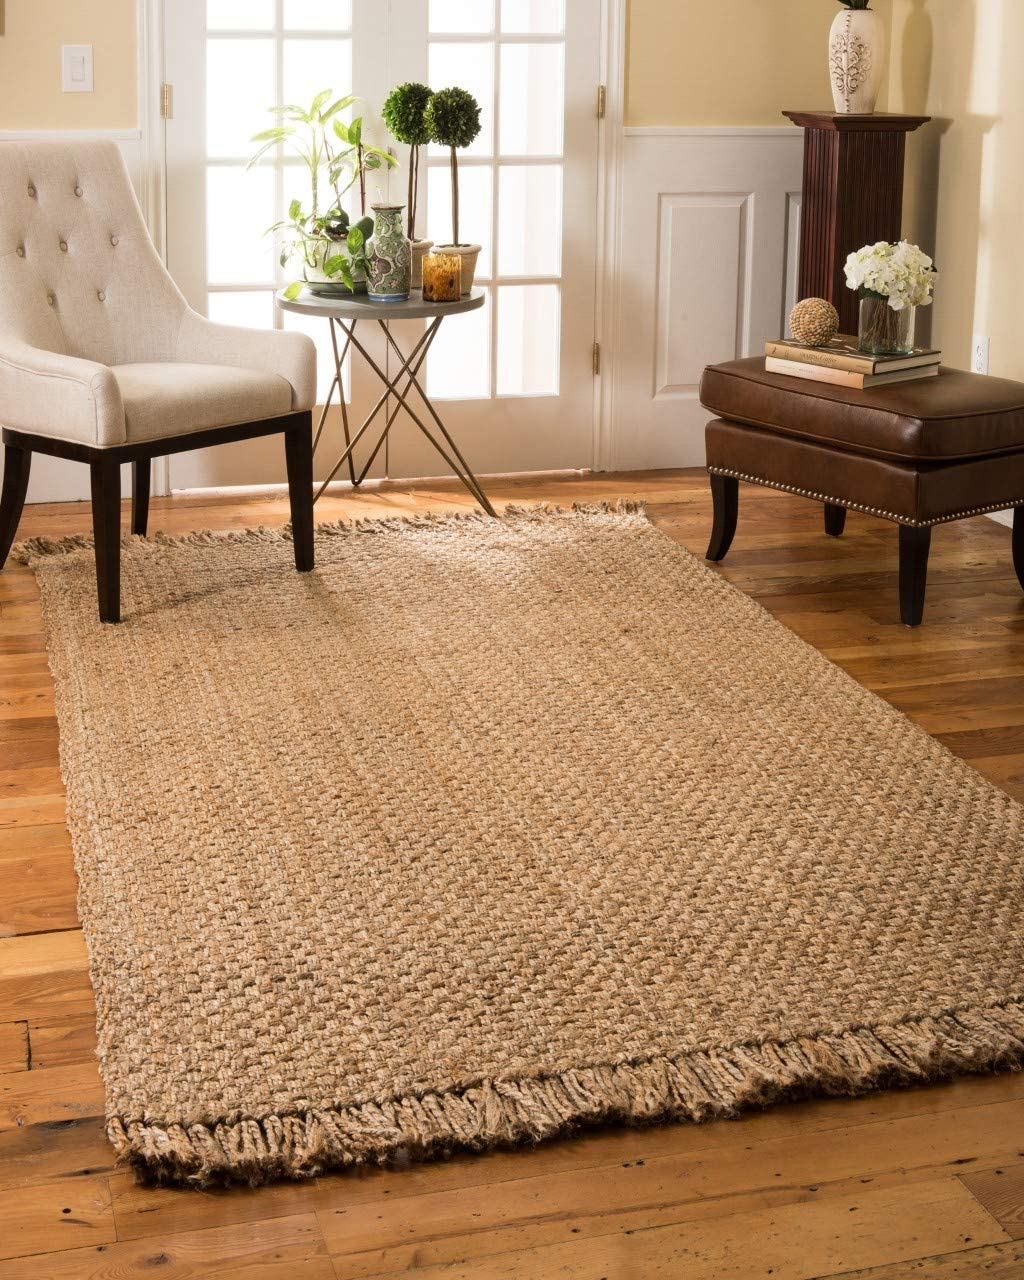 Natural Area Rugs Natural Fiber, Handmade Reversible Basketweave Chunky Paloma Jute Rug 8 x 10 Beige